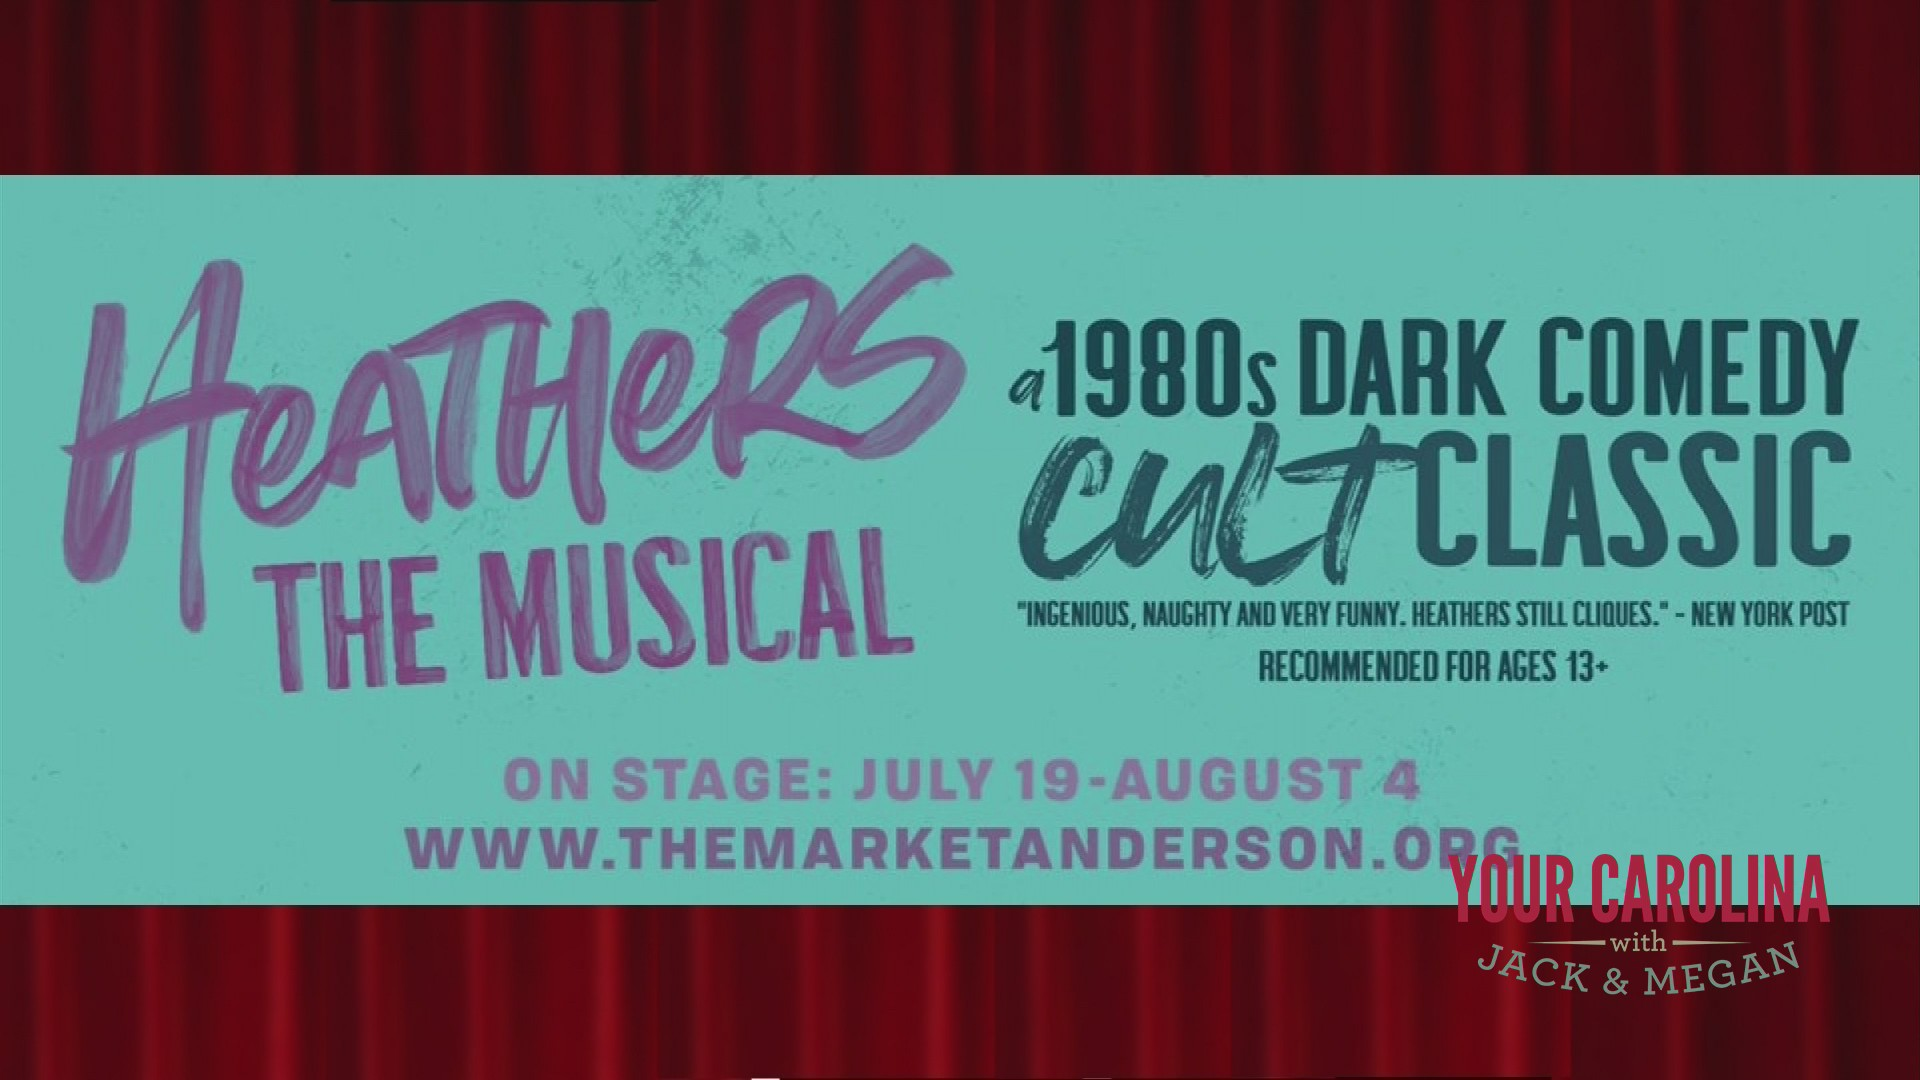 The Market Theatre Company Presents HEATHERS:THE MUSICAL